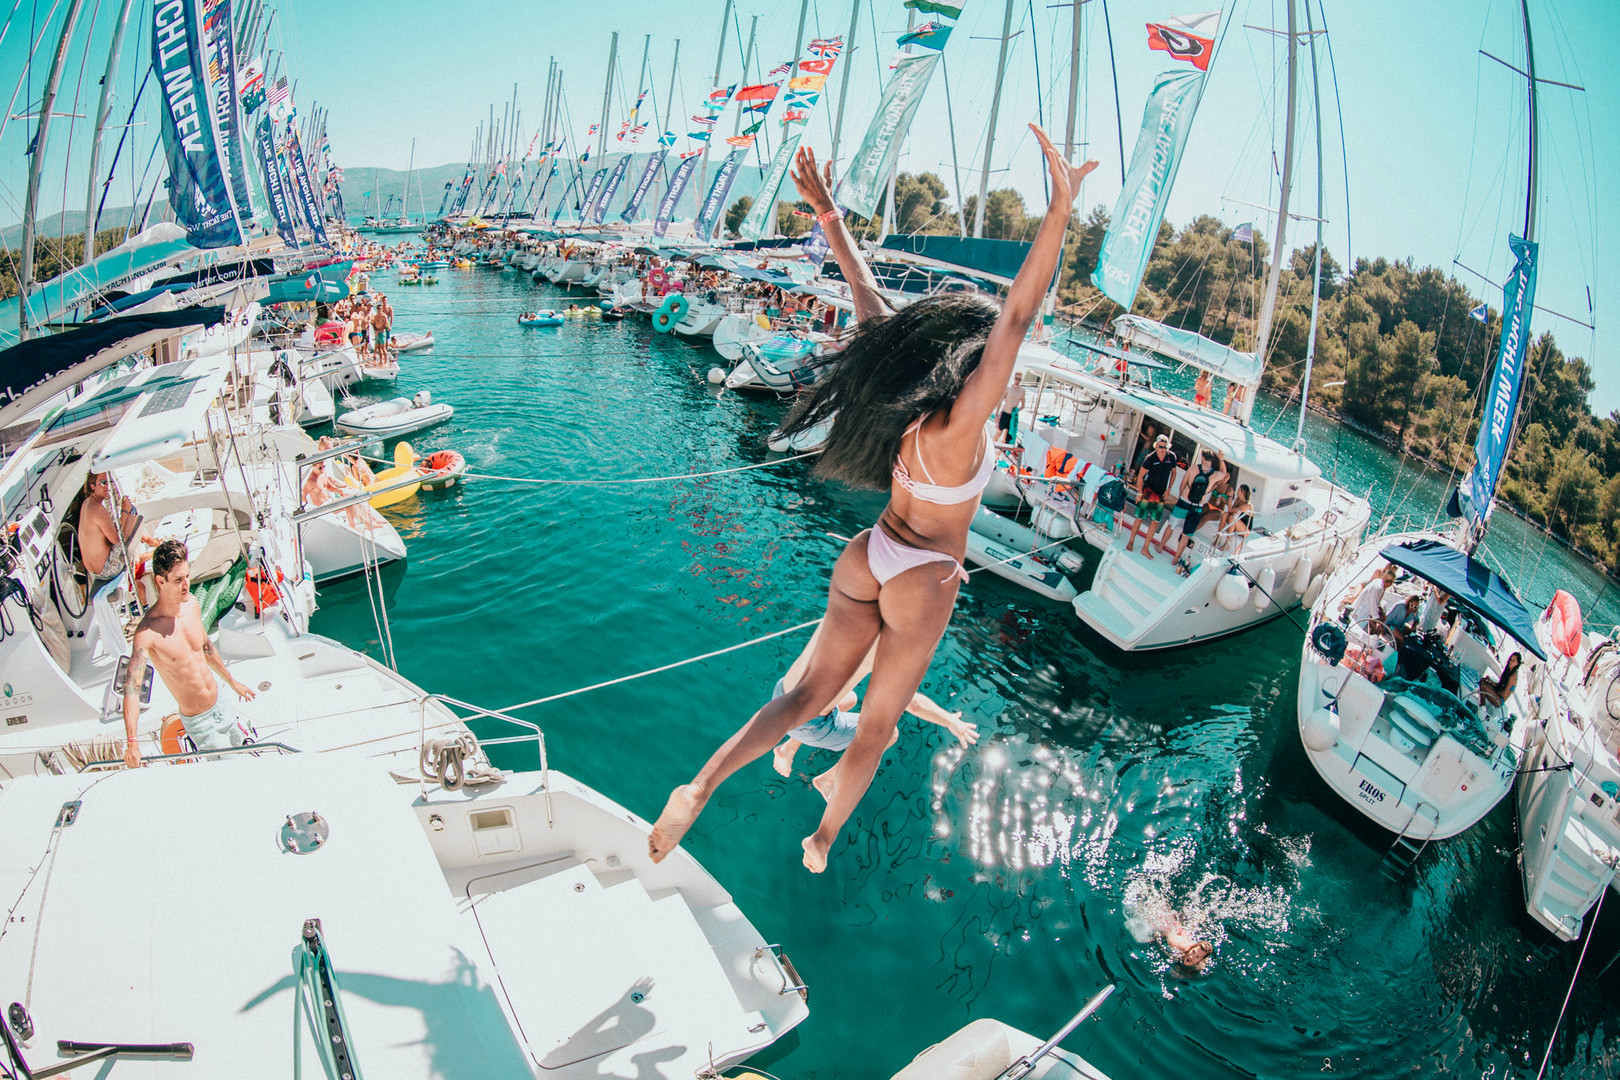 Boat Party, bring a swimsuit or four!